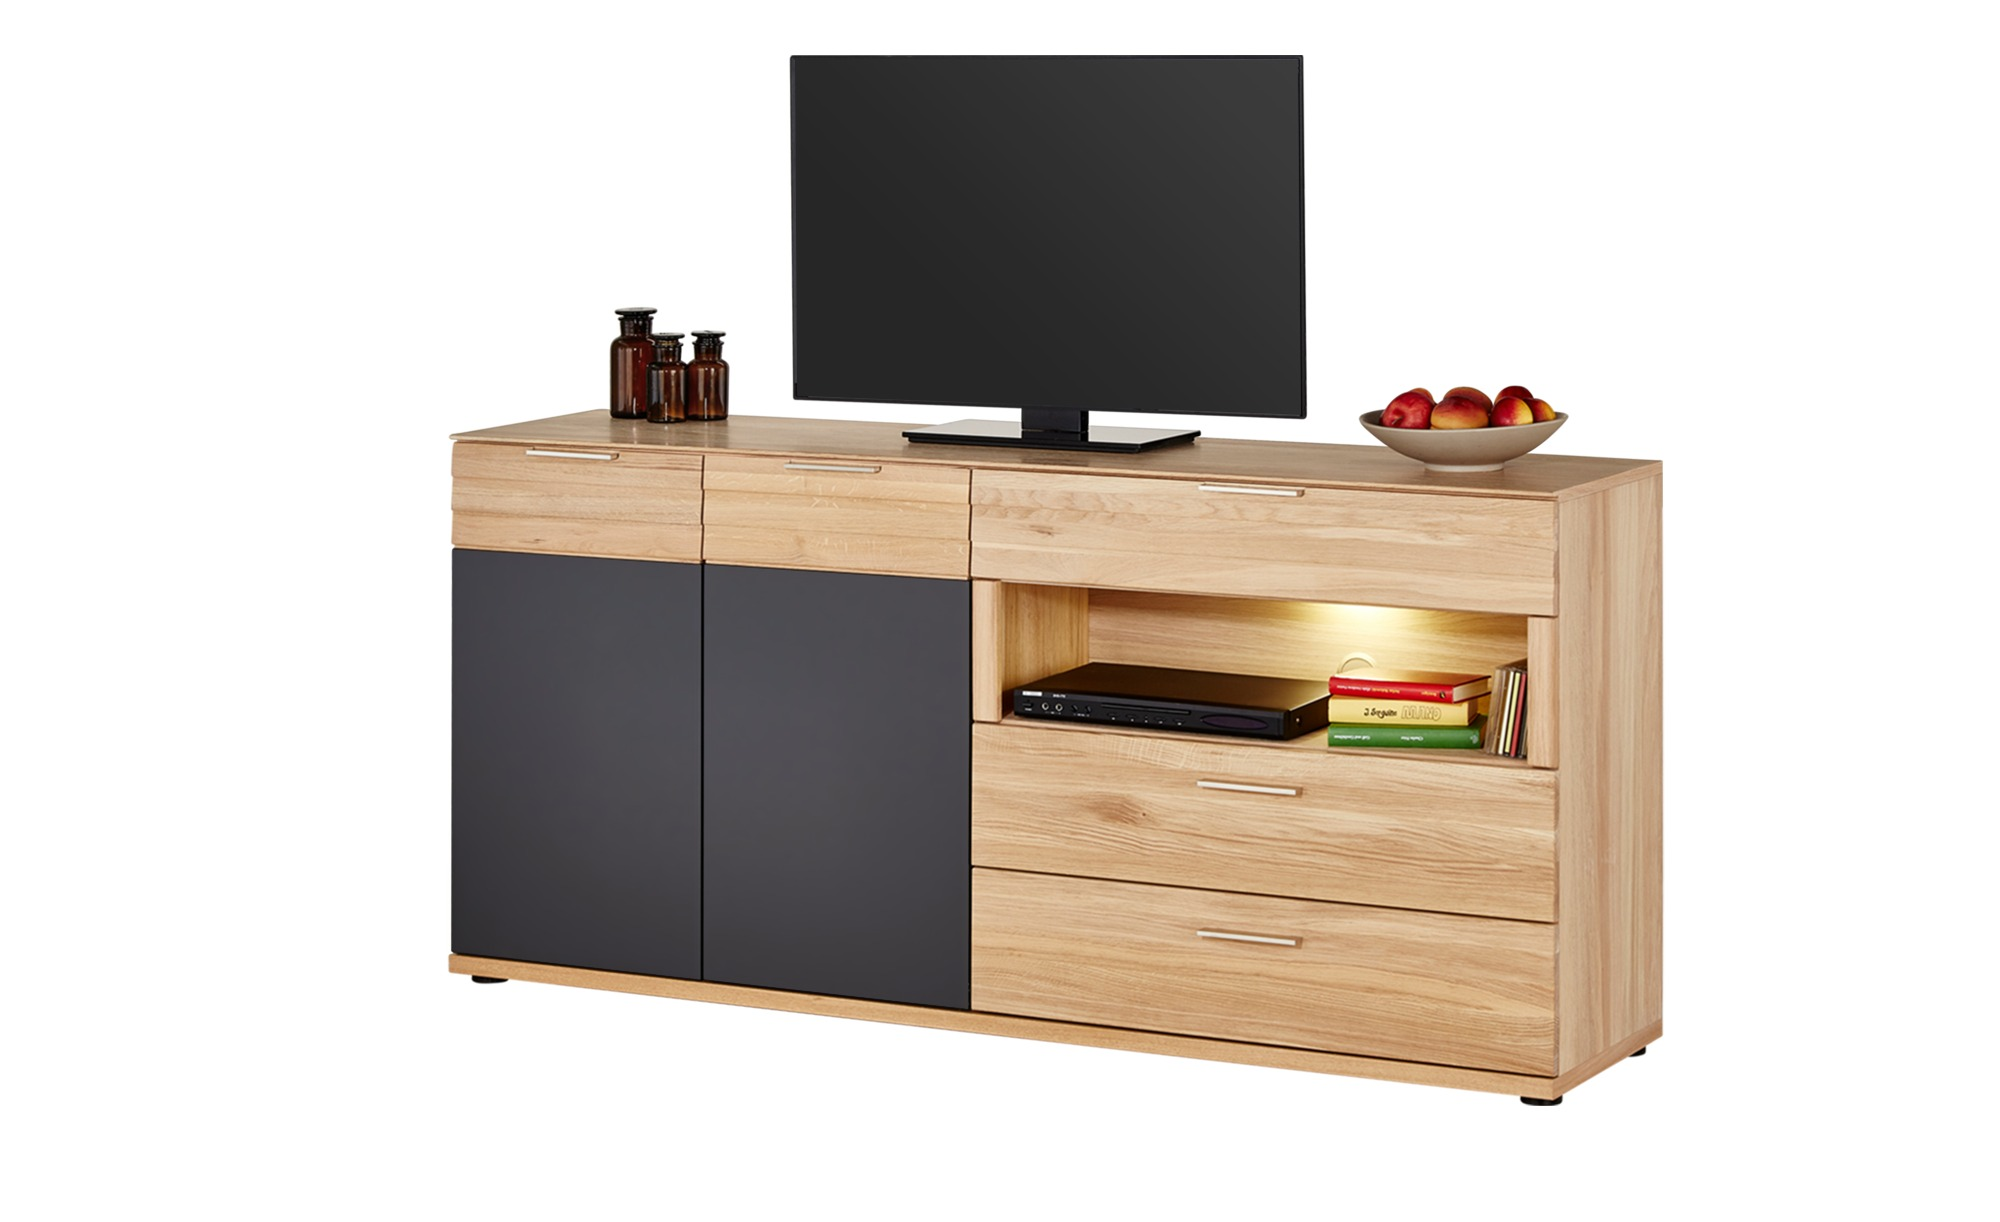 woodford sideboard achat breite 180 cm h he 87 cm holzfarben online kaufen bei woonio. Black Bedroom Furniture Sets. Home Design Ideas